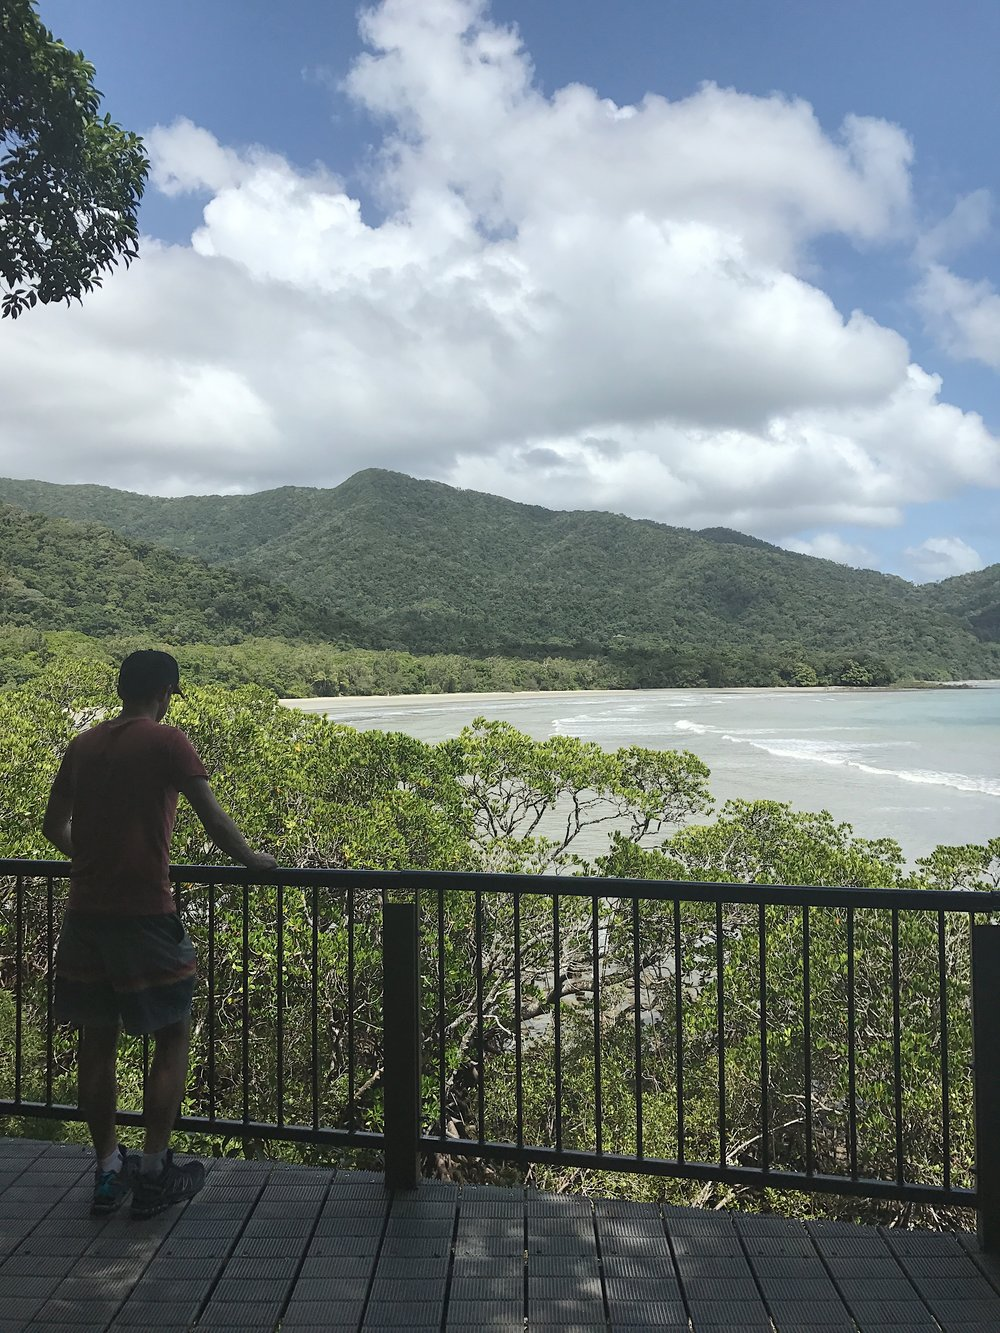 The viewpoint across Cape Tribulation